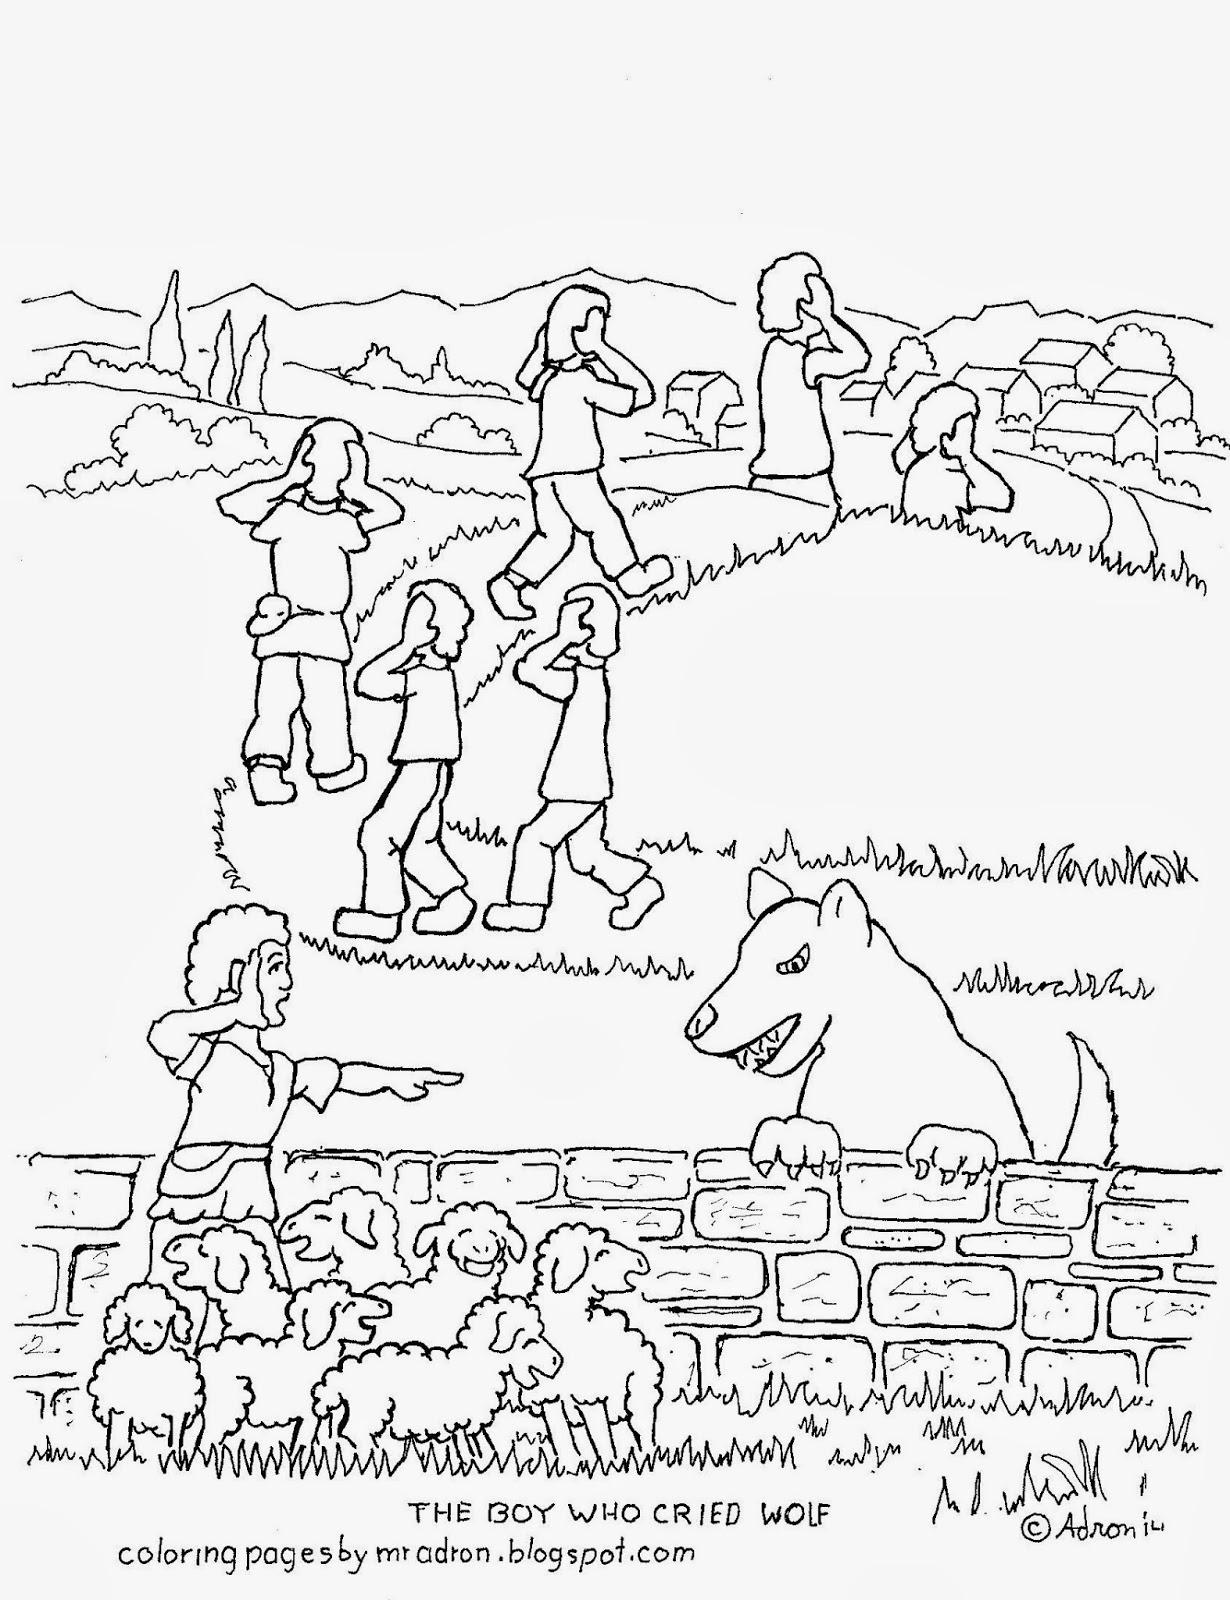 The Boy Who Cried Wolf Free Coloring Page